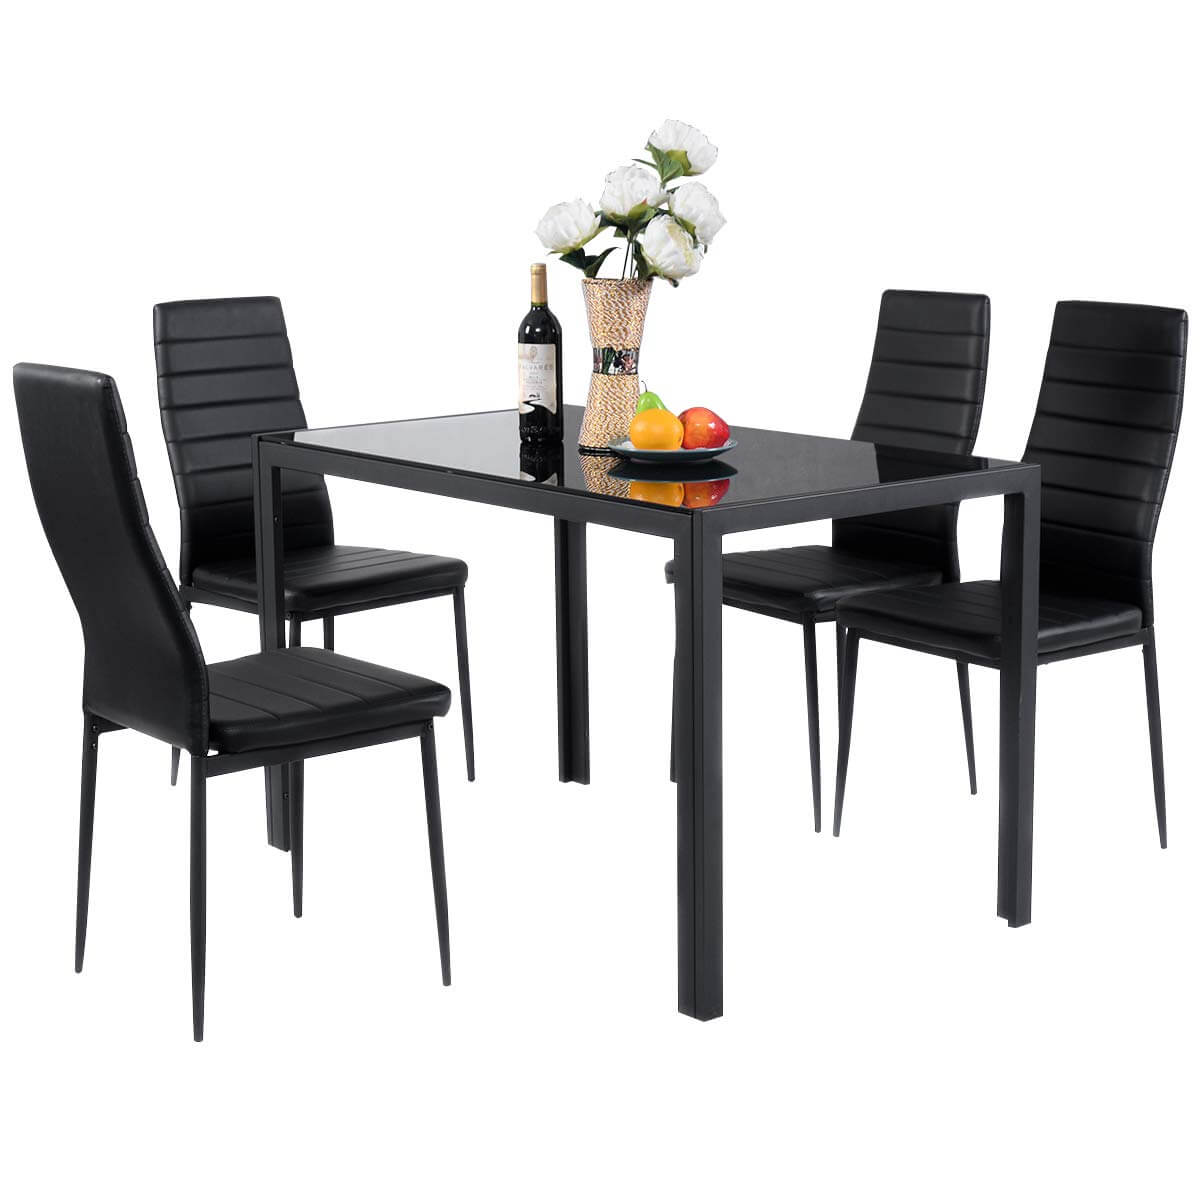 Top 10 Best Dining Table Sets Review-4